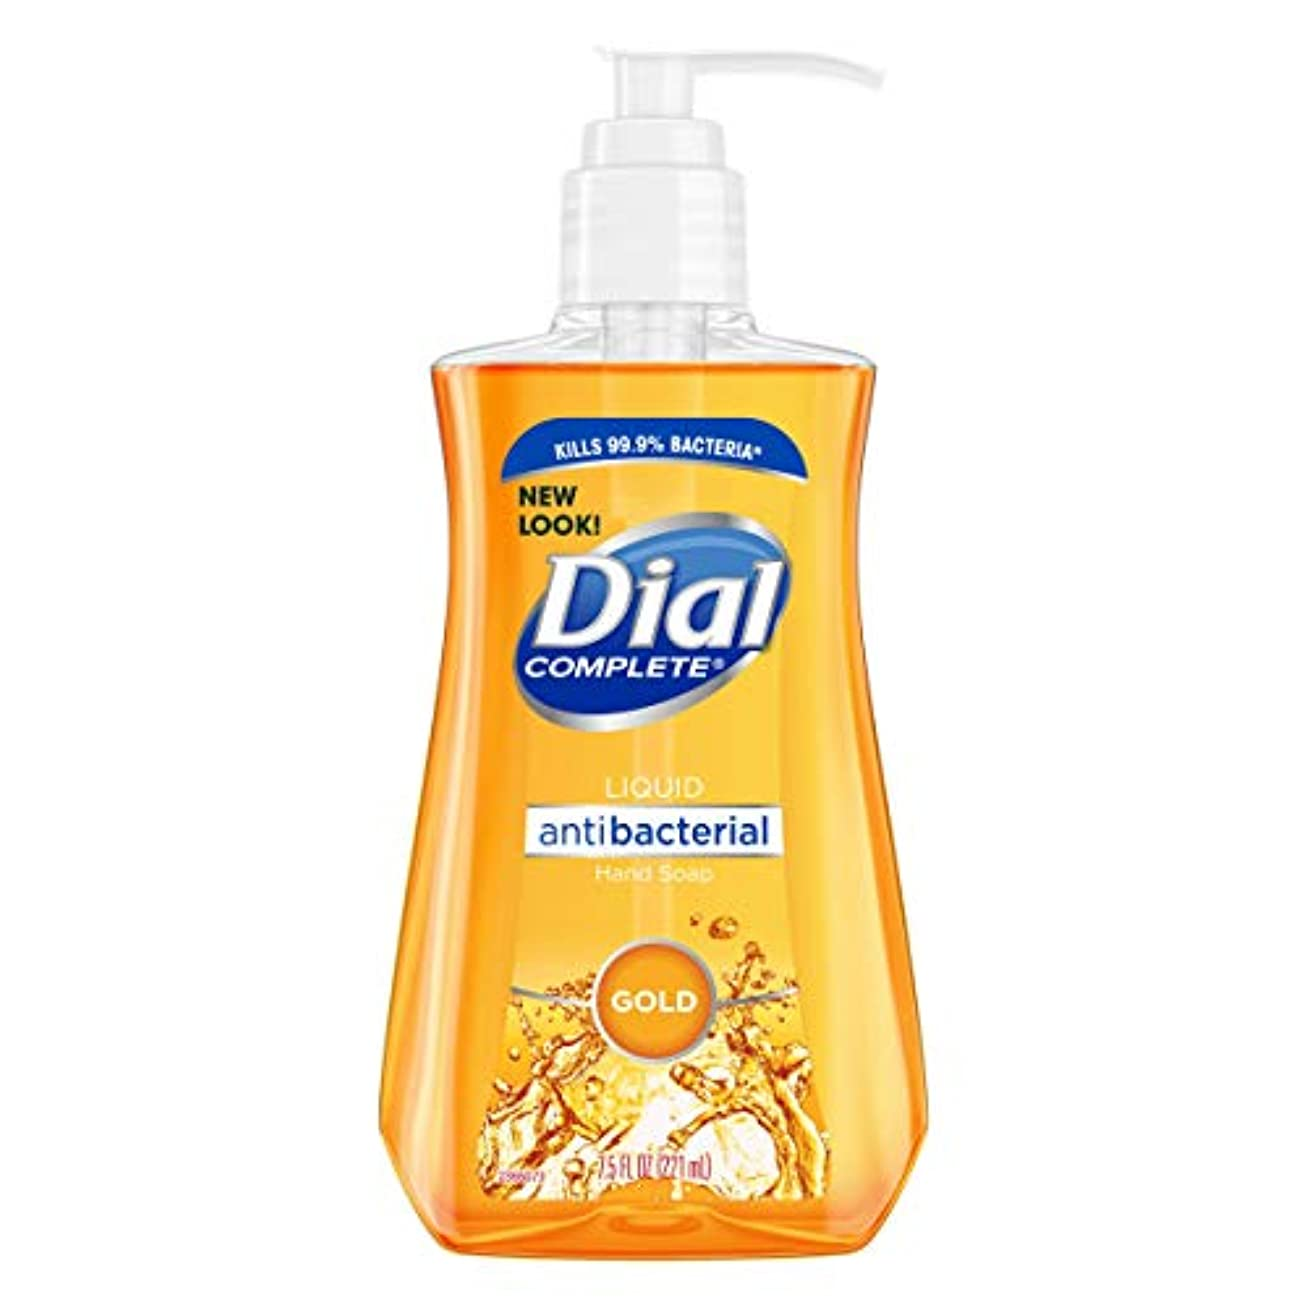 護衛人物パーツ海外直送品Dial Antibacterial Liquid Hand Soap, Gold 7.5 oz by Dial